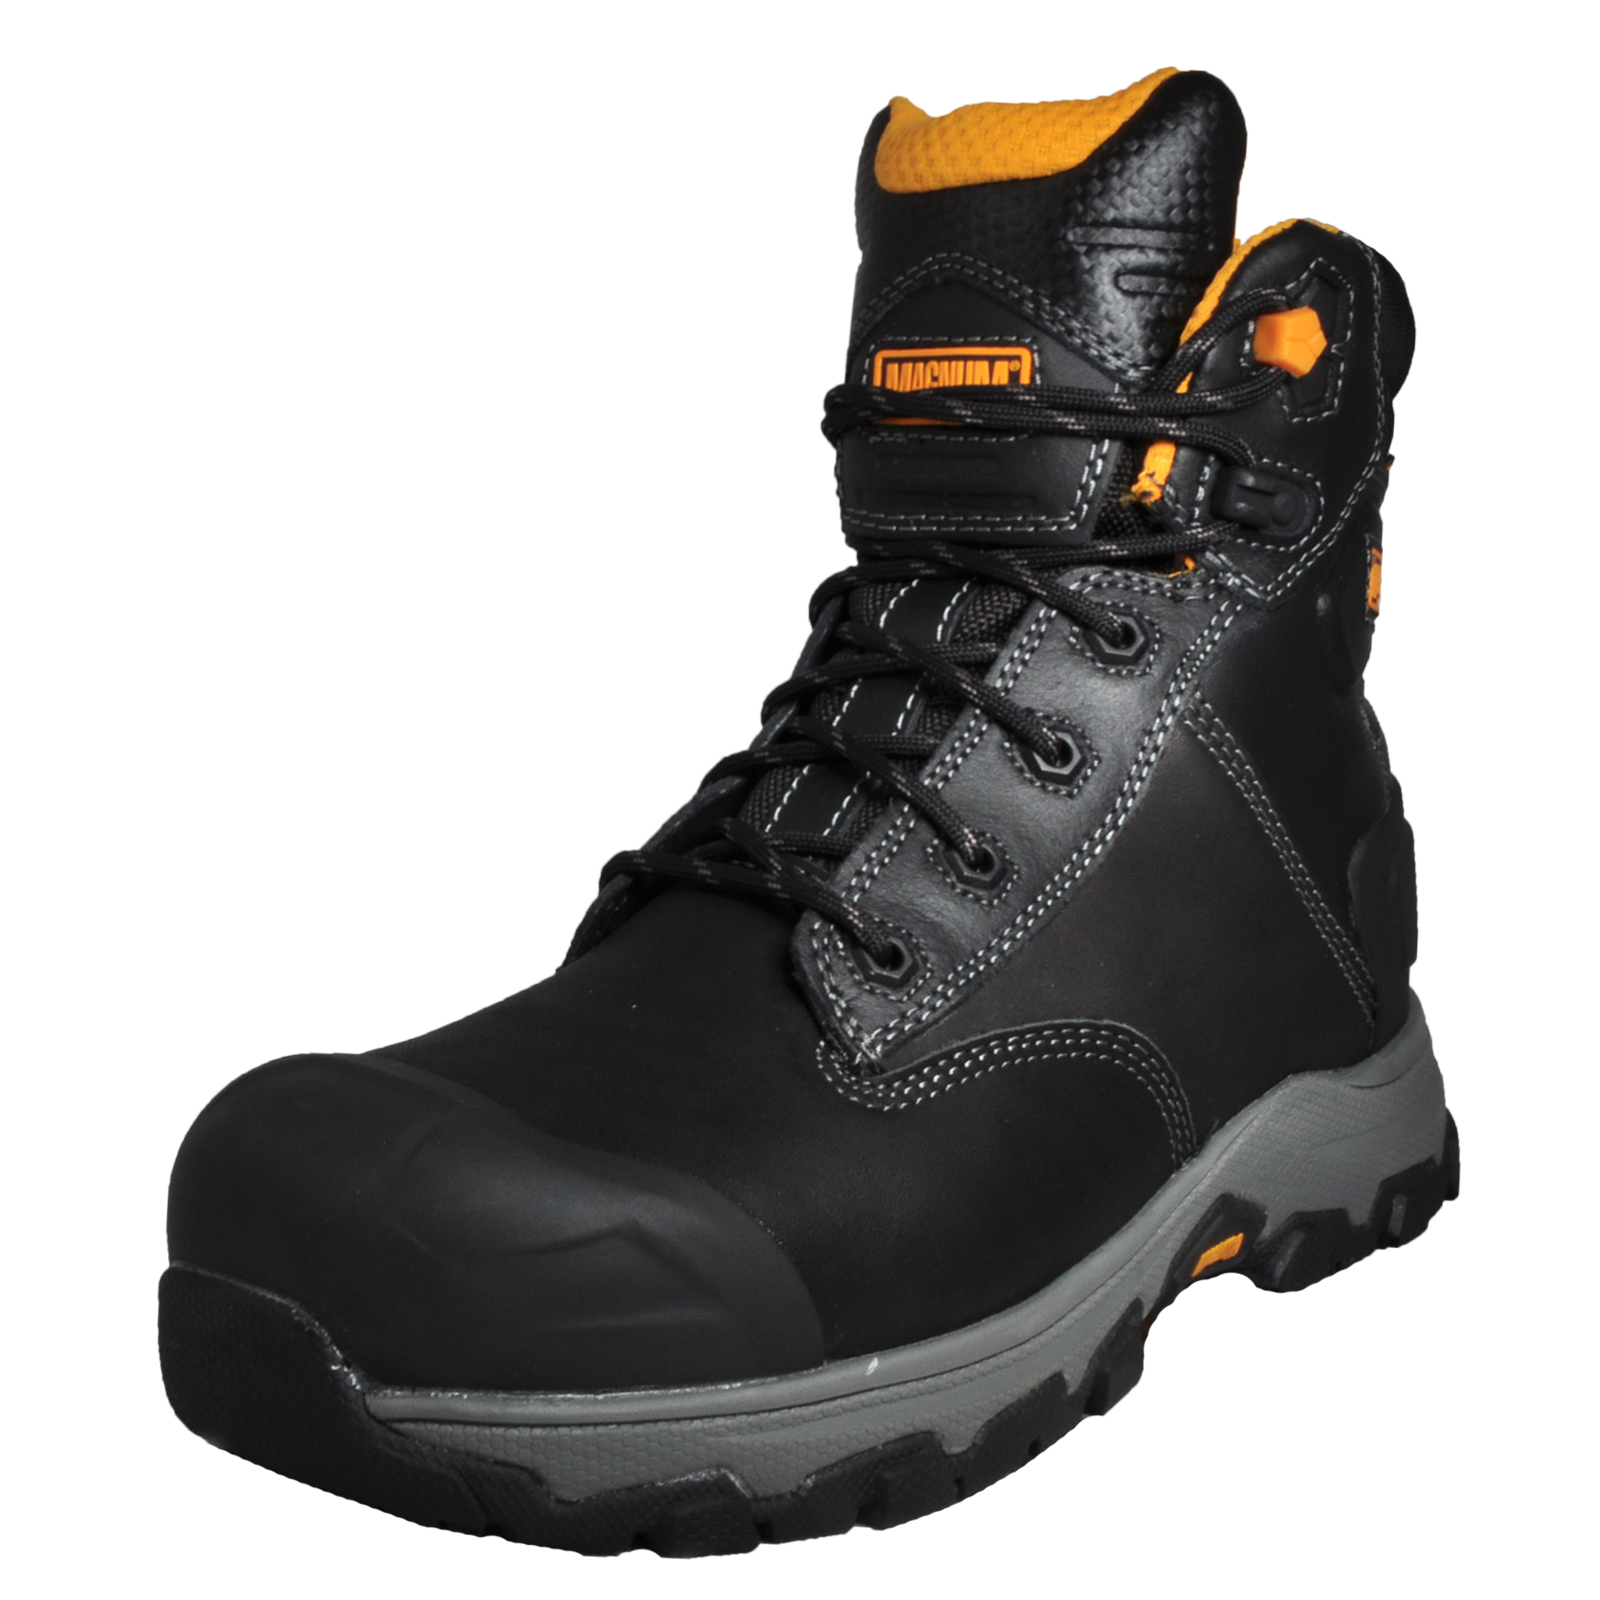 Magnum Hamburg 6.0 Men's Leather Waterproof S3 SRC-Rated Safety Work Boots  Black